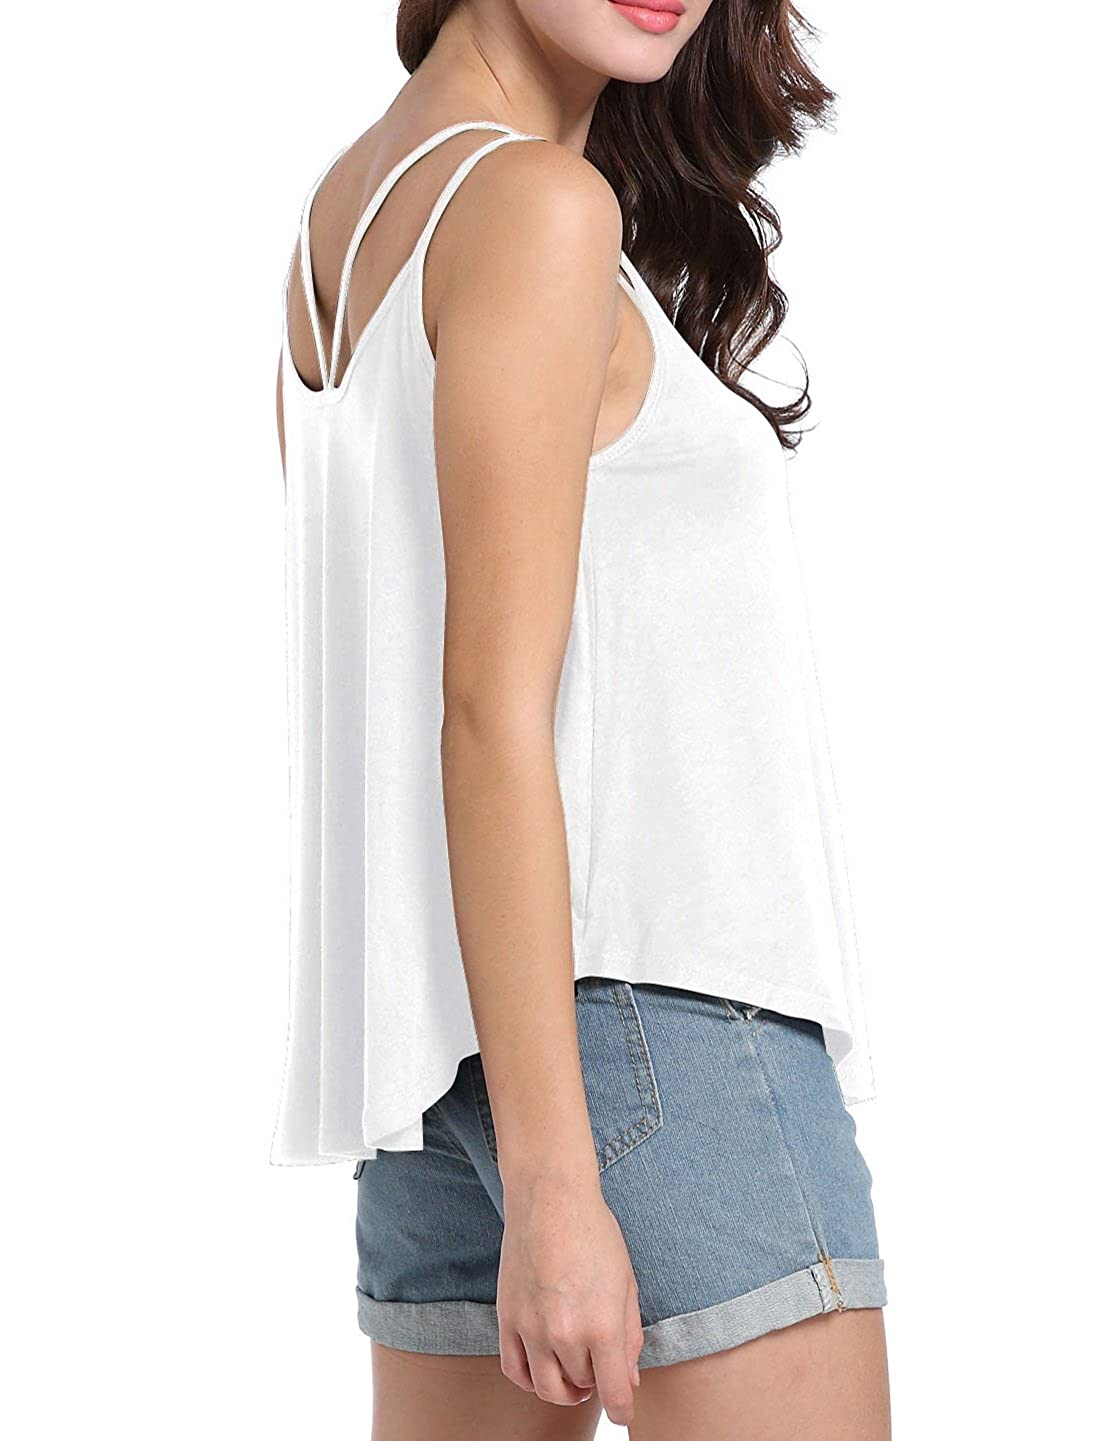 e1216253faed31 BESIPU Oversized Tank Tops for Women Loose Flowy V Neck Spaghetti Strap  Camisoles Shirts at Amazon Women s Clothing store